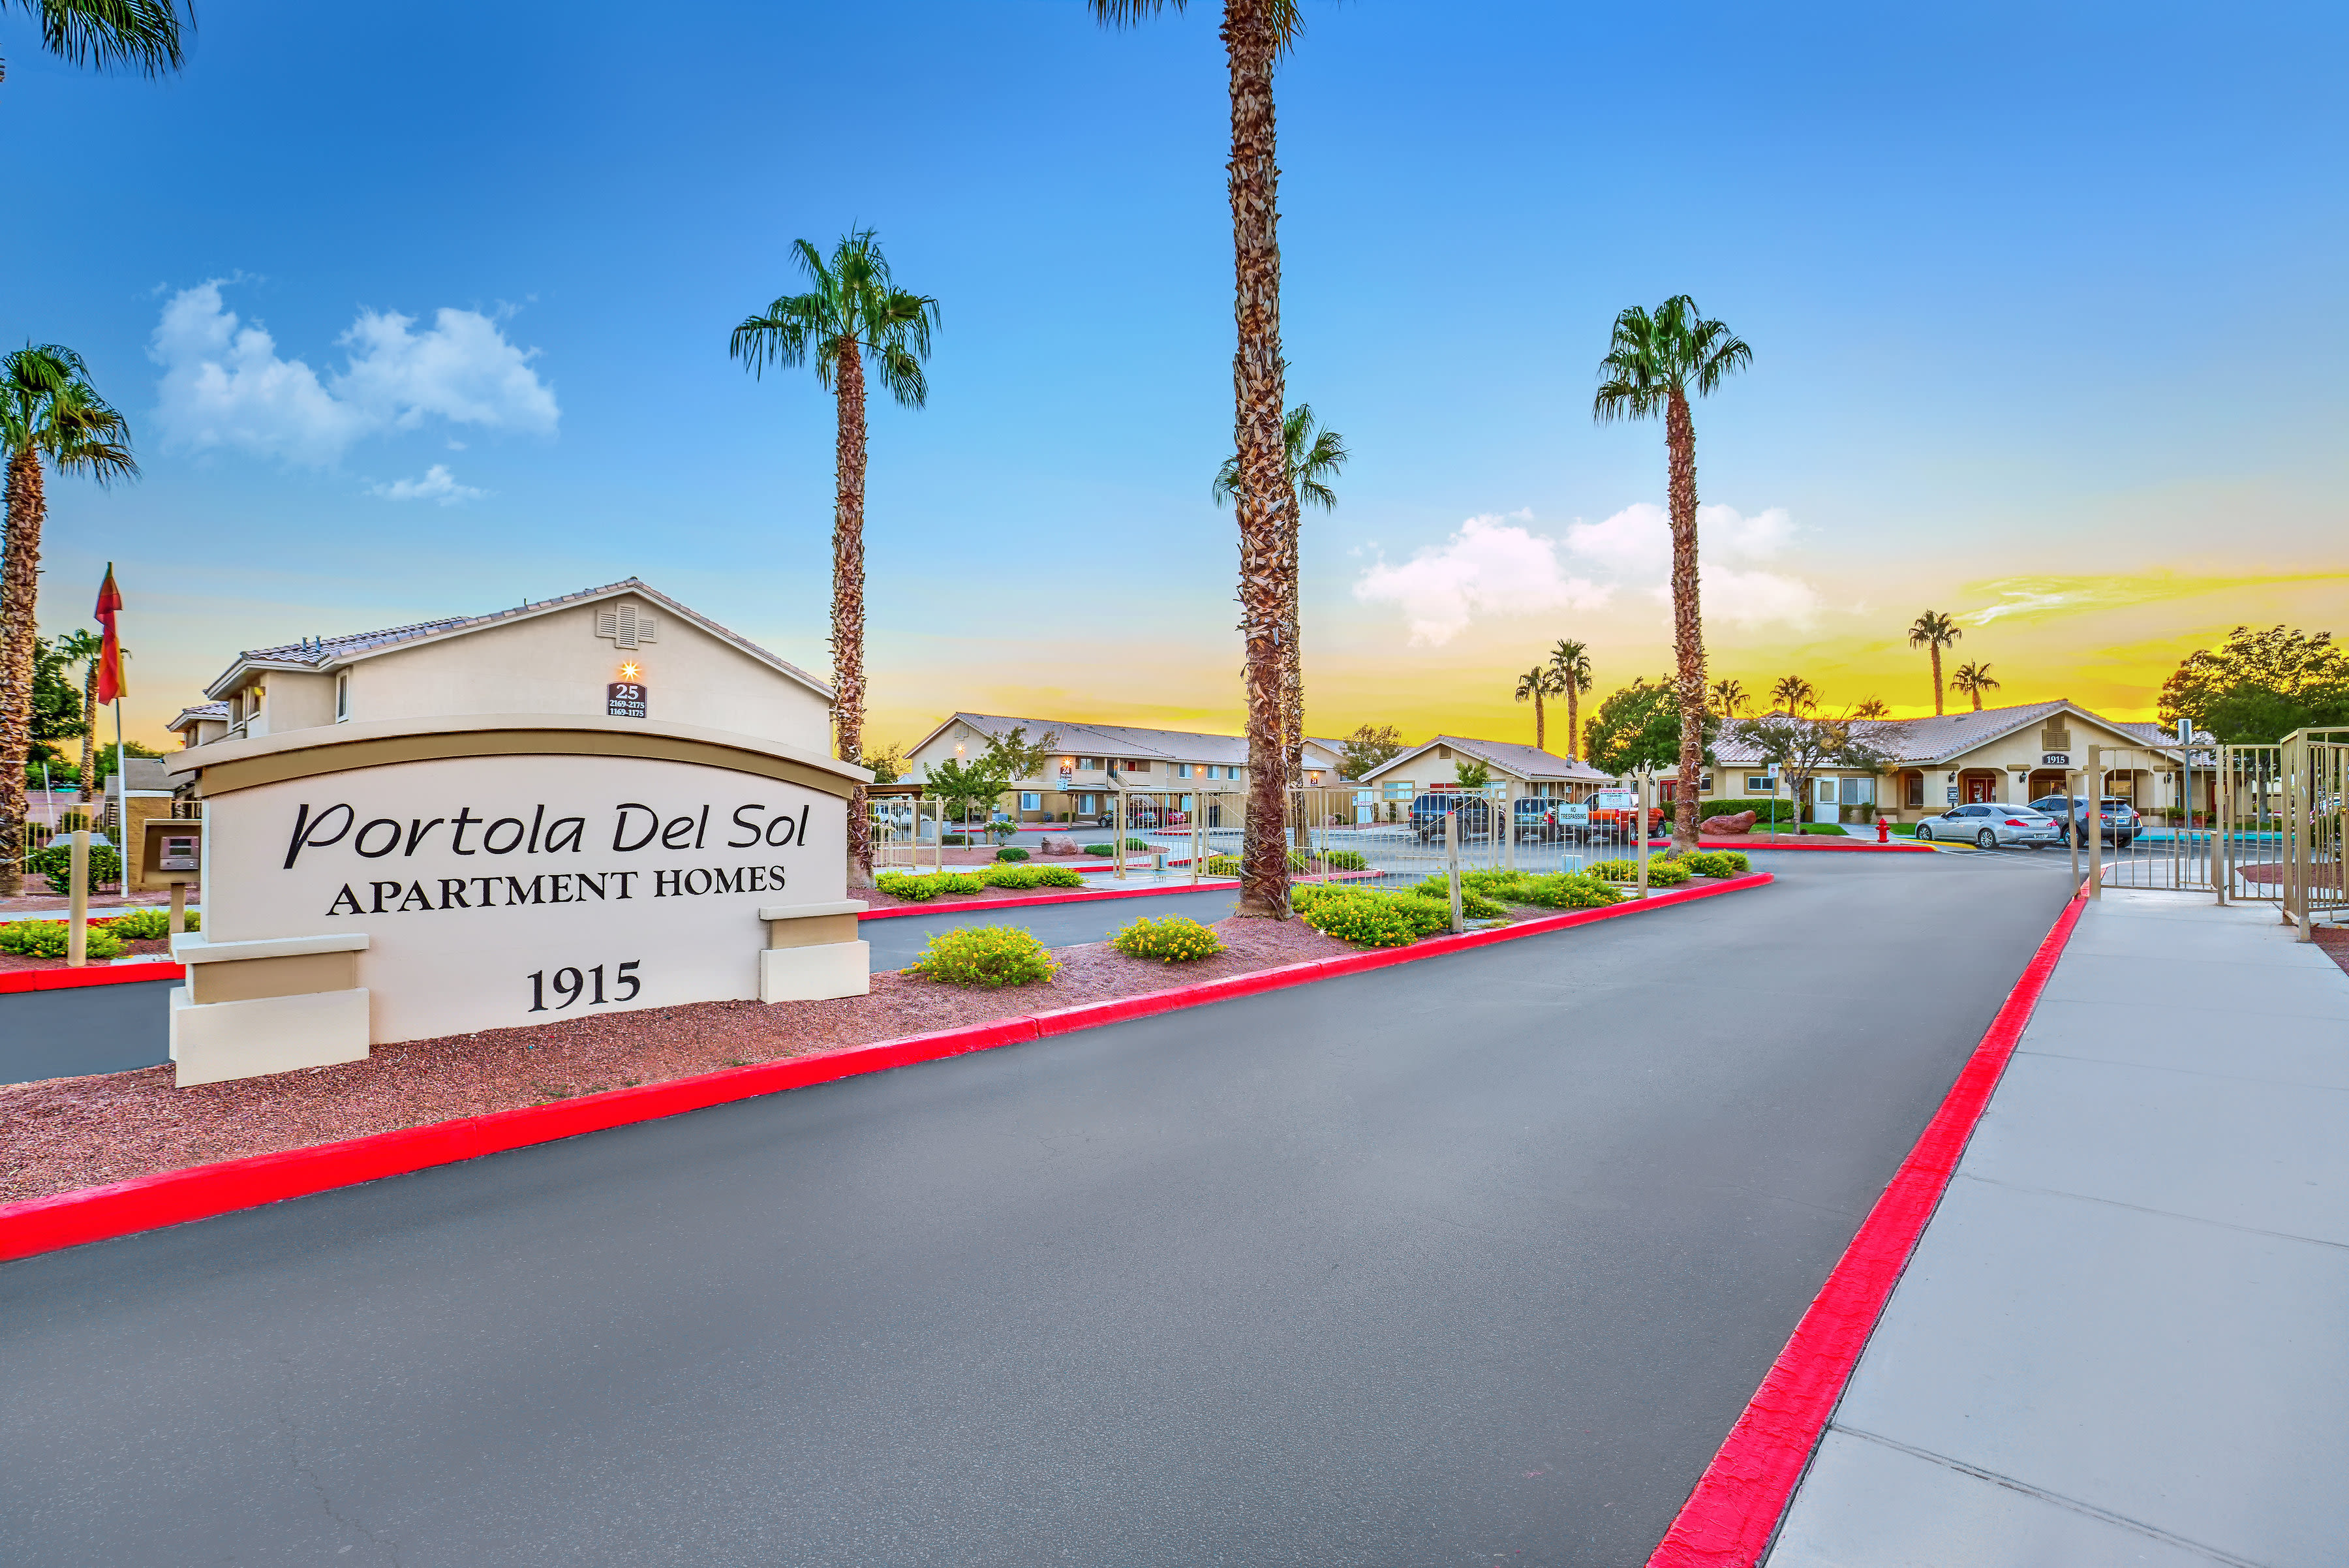 Learn more about the neighborhood at Portola Del Sol